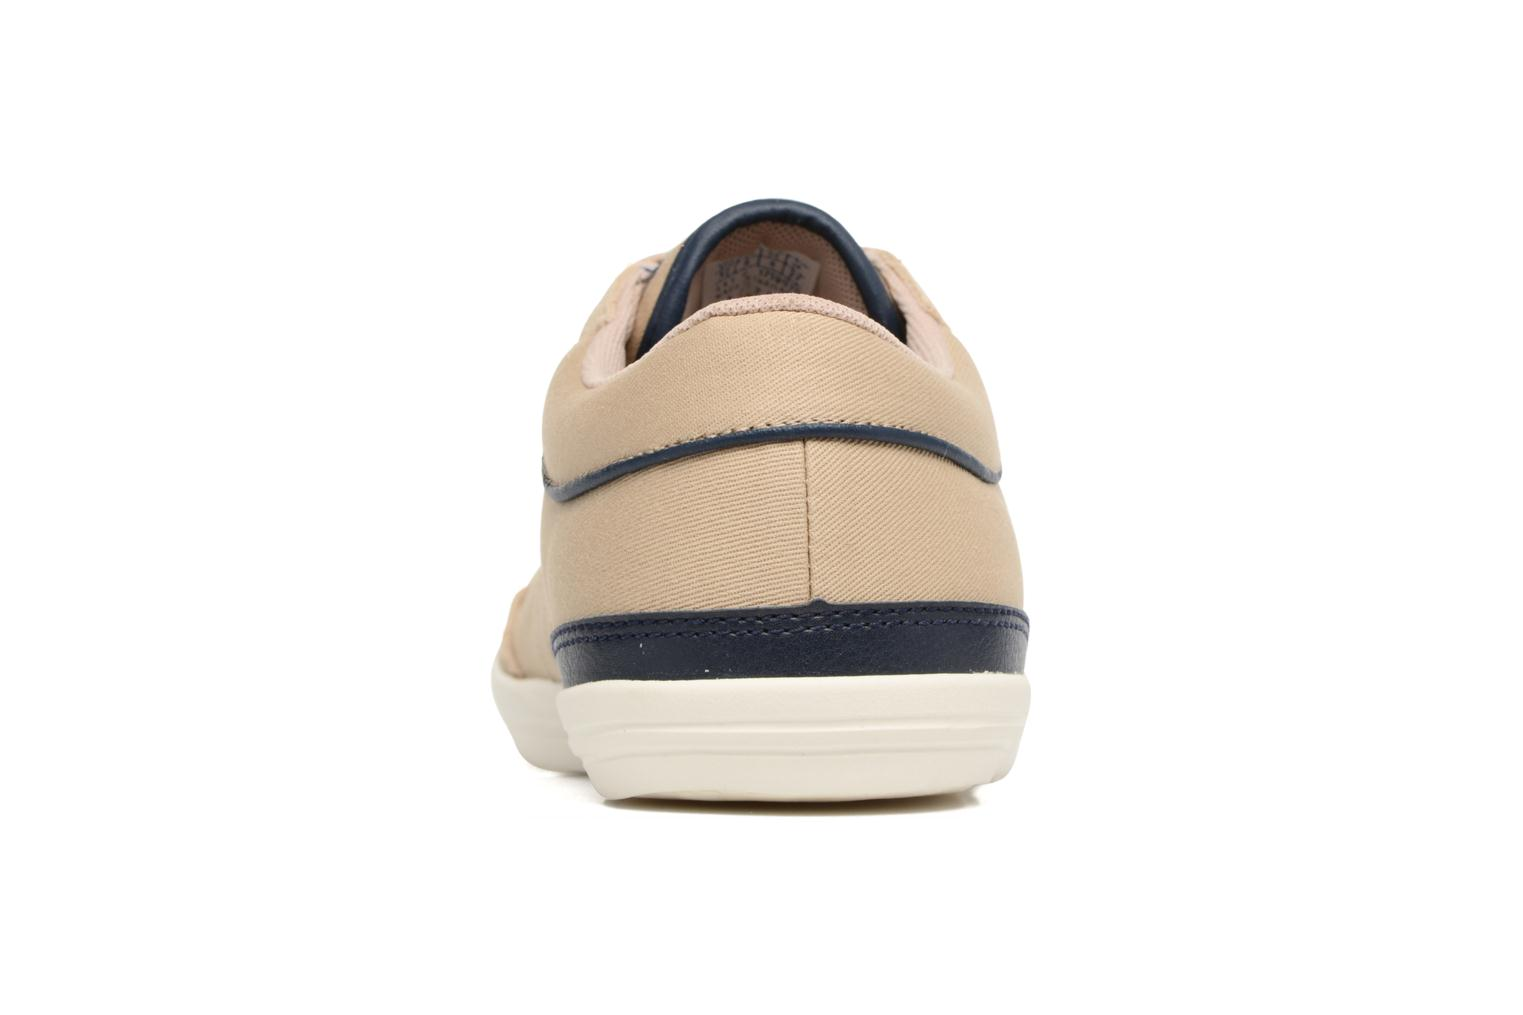 Feretcraft Twill Cvs Sesame/Dress Blue